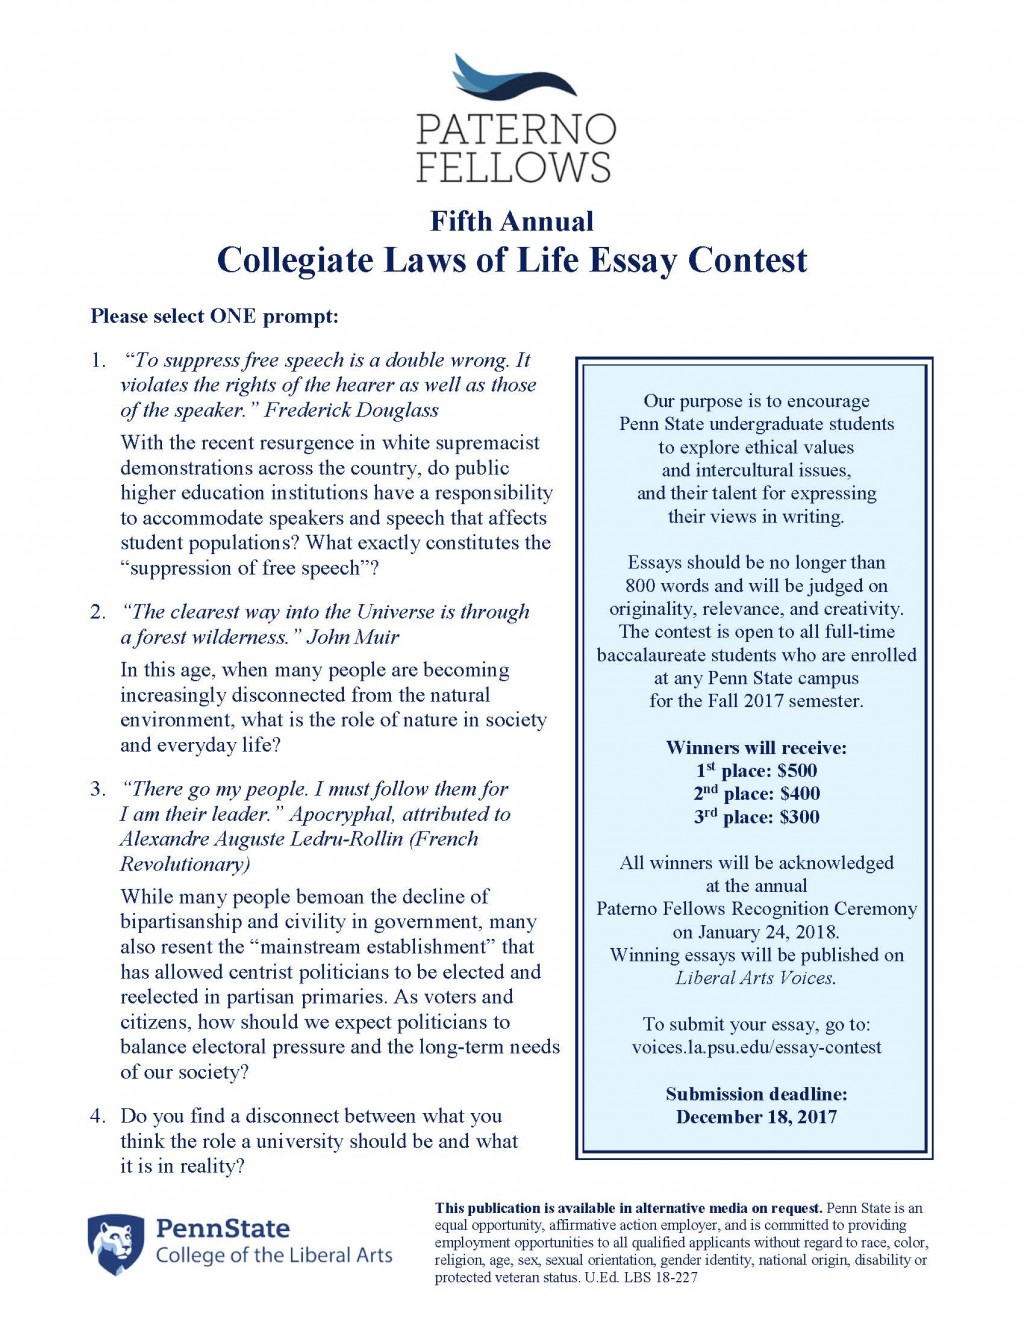 014 Clol Essay Flyer 2i7pwcs Example Law Of Awesome Life Laws Contest Ohio 2016 Competition Bahamas 2018 Large